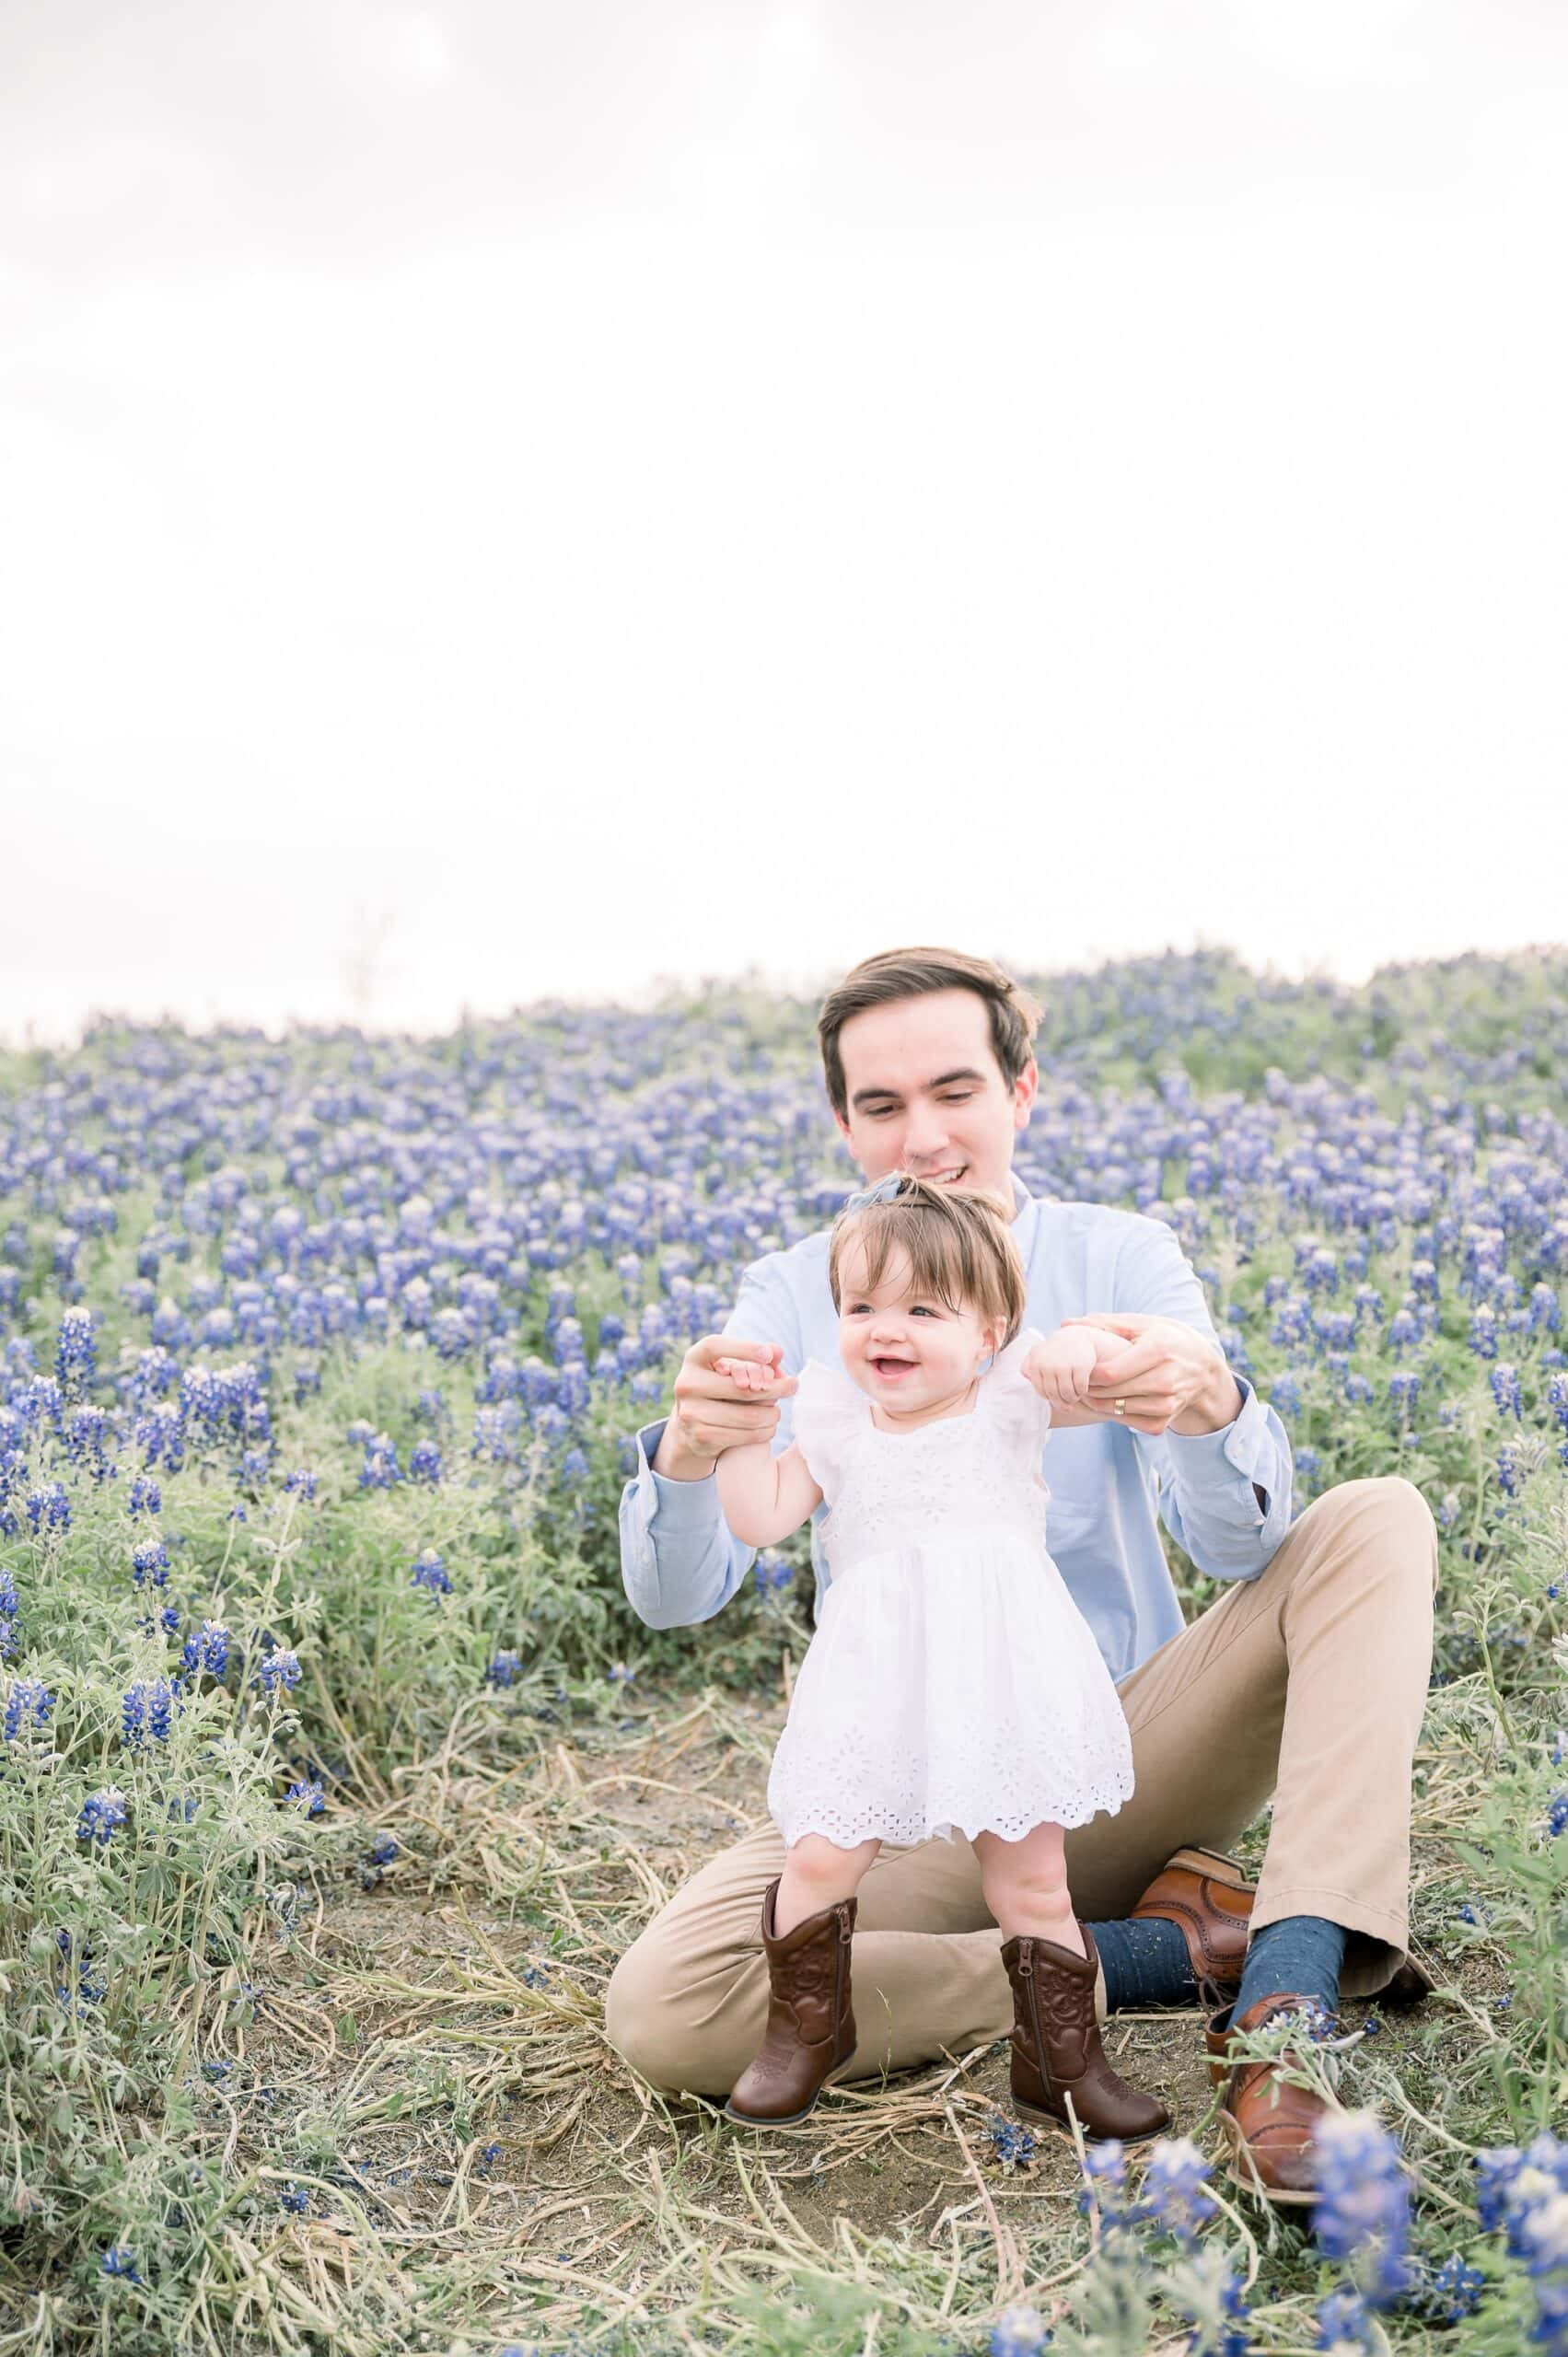 Closeup of Dad holding baby girl's hands in field of bluebonnet flowers in Texas. Photo by Prosper family photographer, Aimee Hamilton Photography.